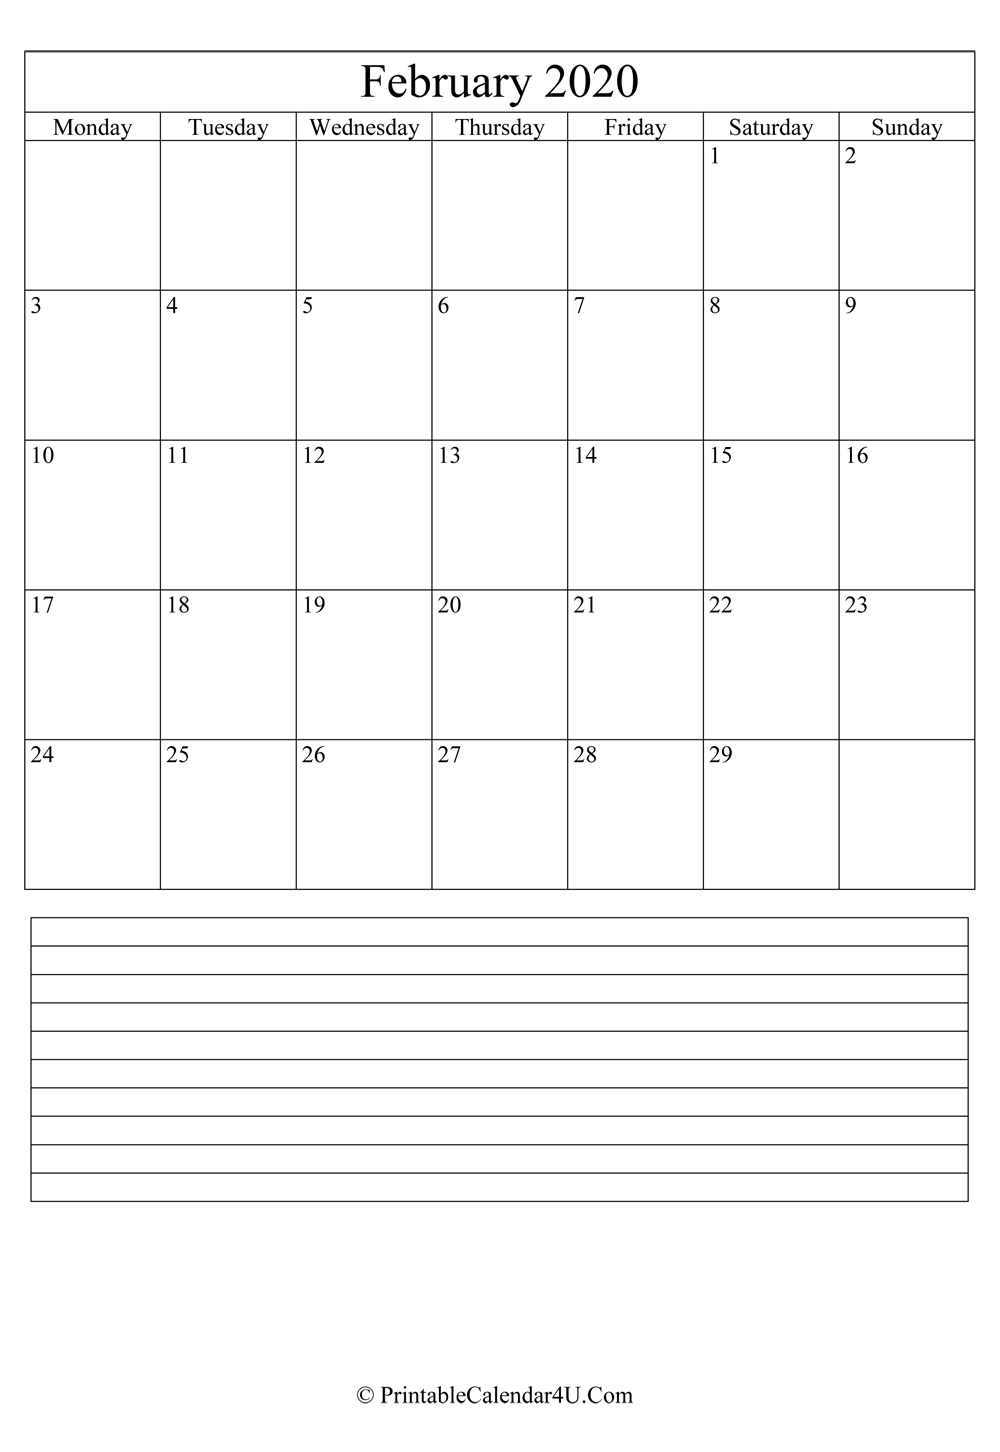 Printable February Calendar 2020 With Notes (Portrait) Impressive Ms Word 2020 Verticle Calendar